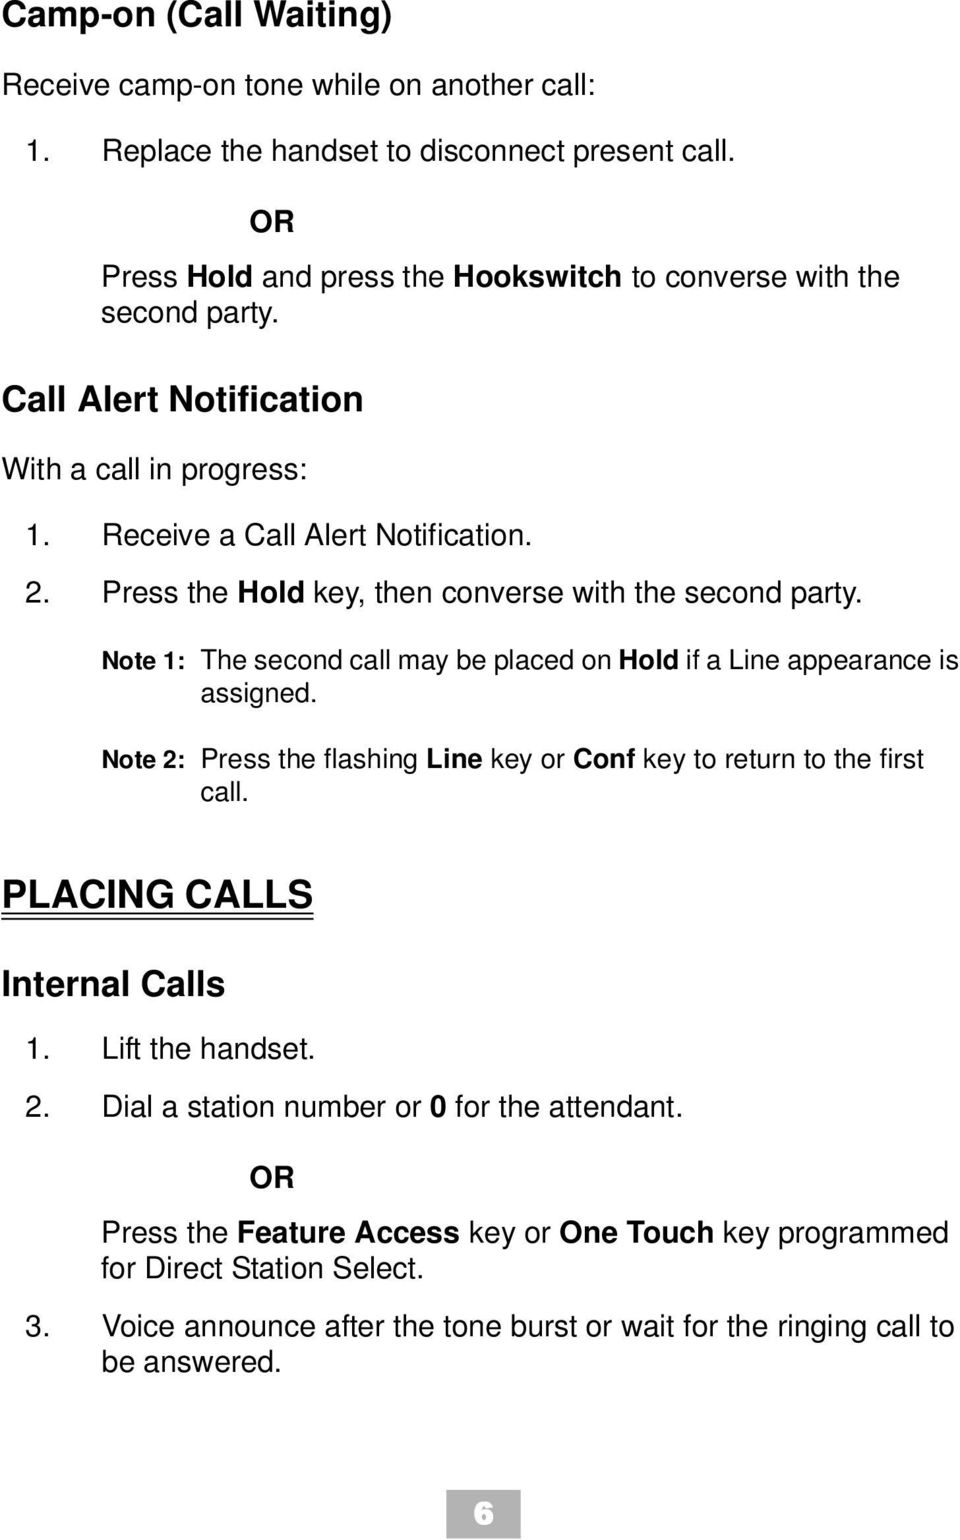 Note 1: The second call may be placed on Hold if a Line appearance is assigned. Note 2: Press the flashing Line key or Conf key to return to the first call. PLACING CALLS Internal Calls 1.